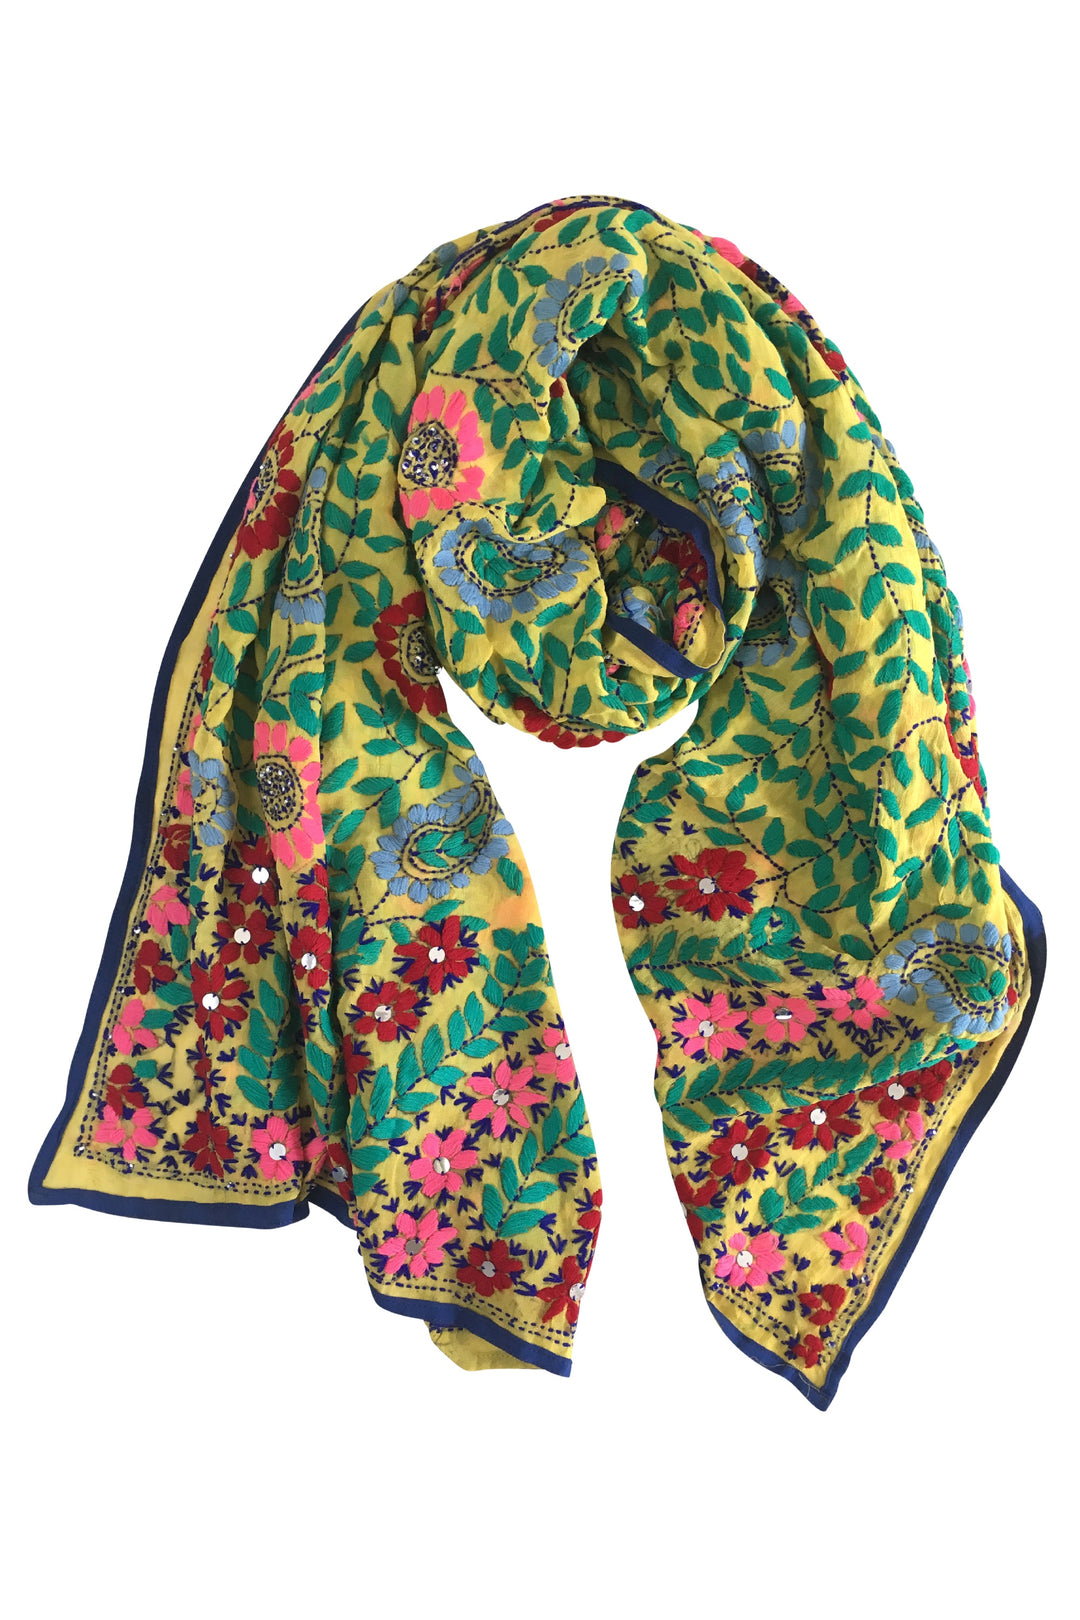 yellow embroidered punjab shawl scarf